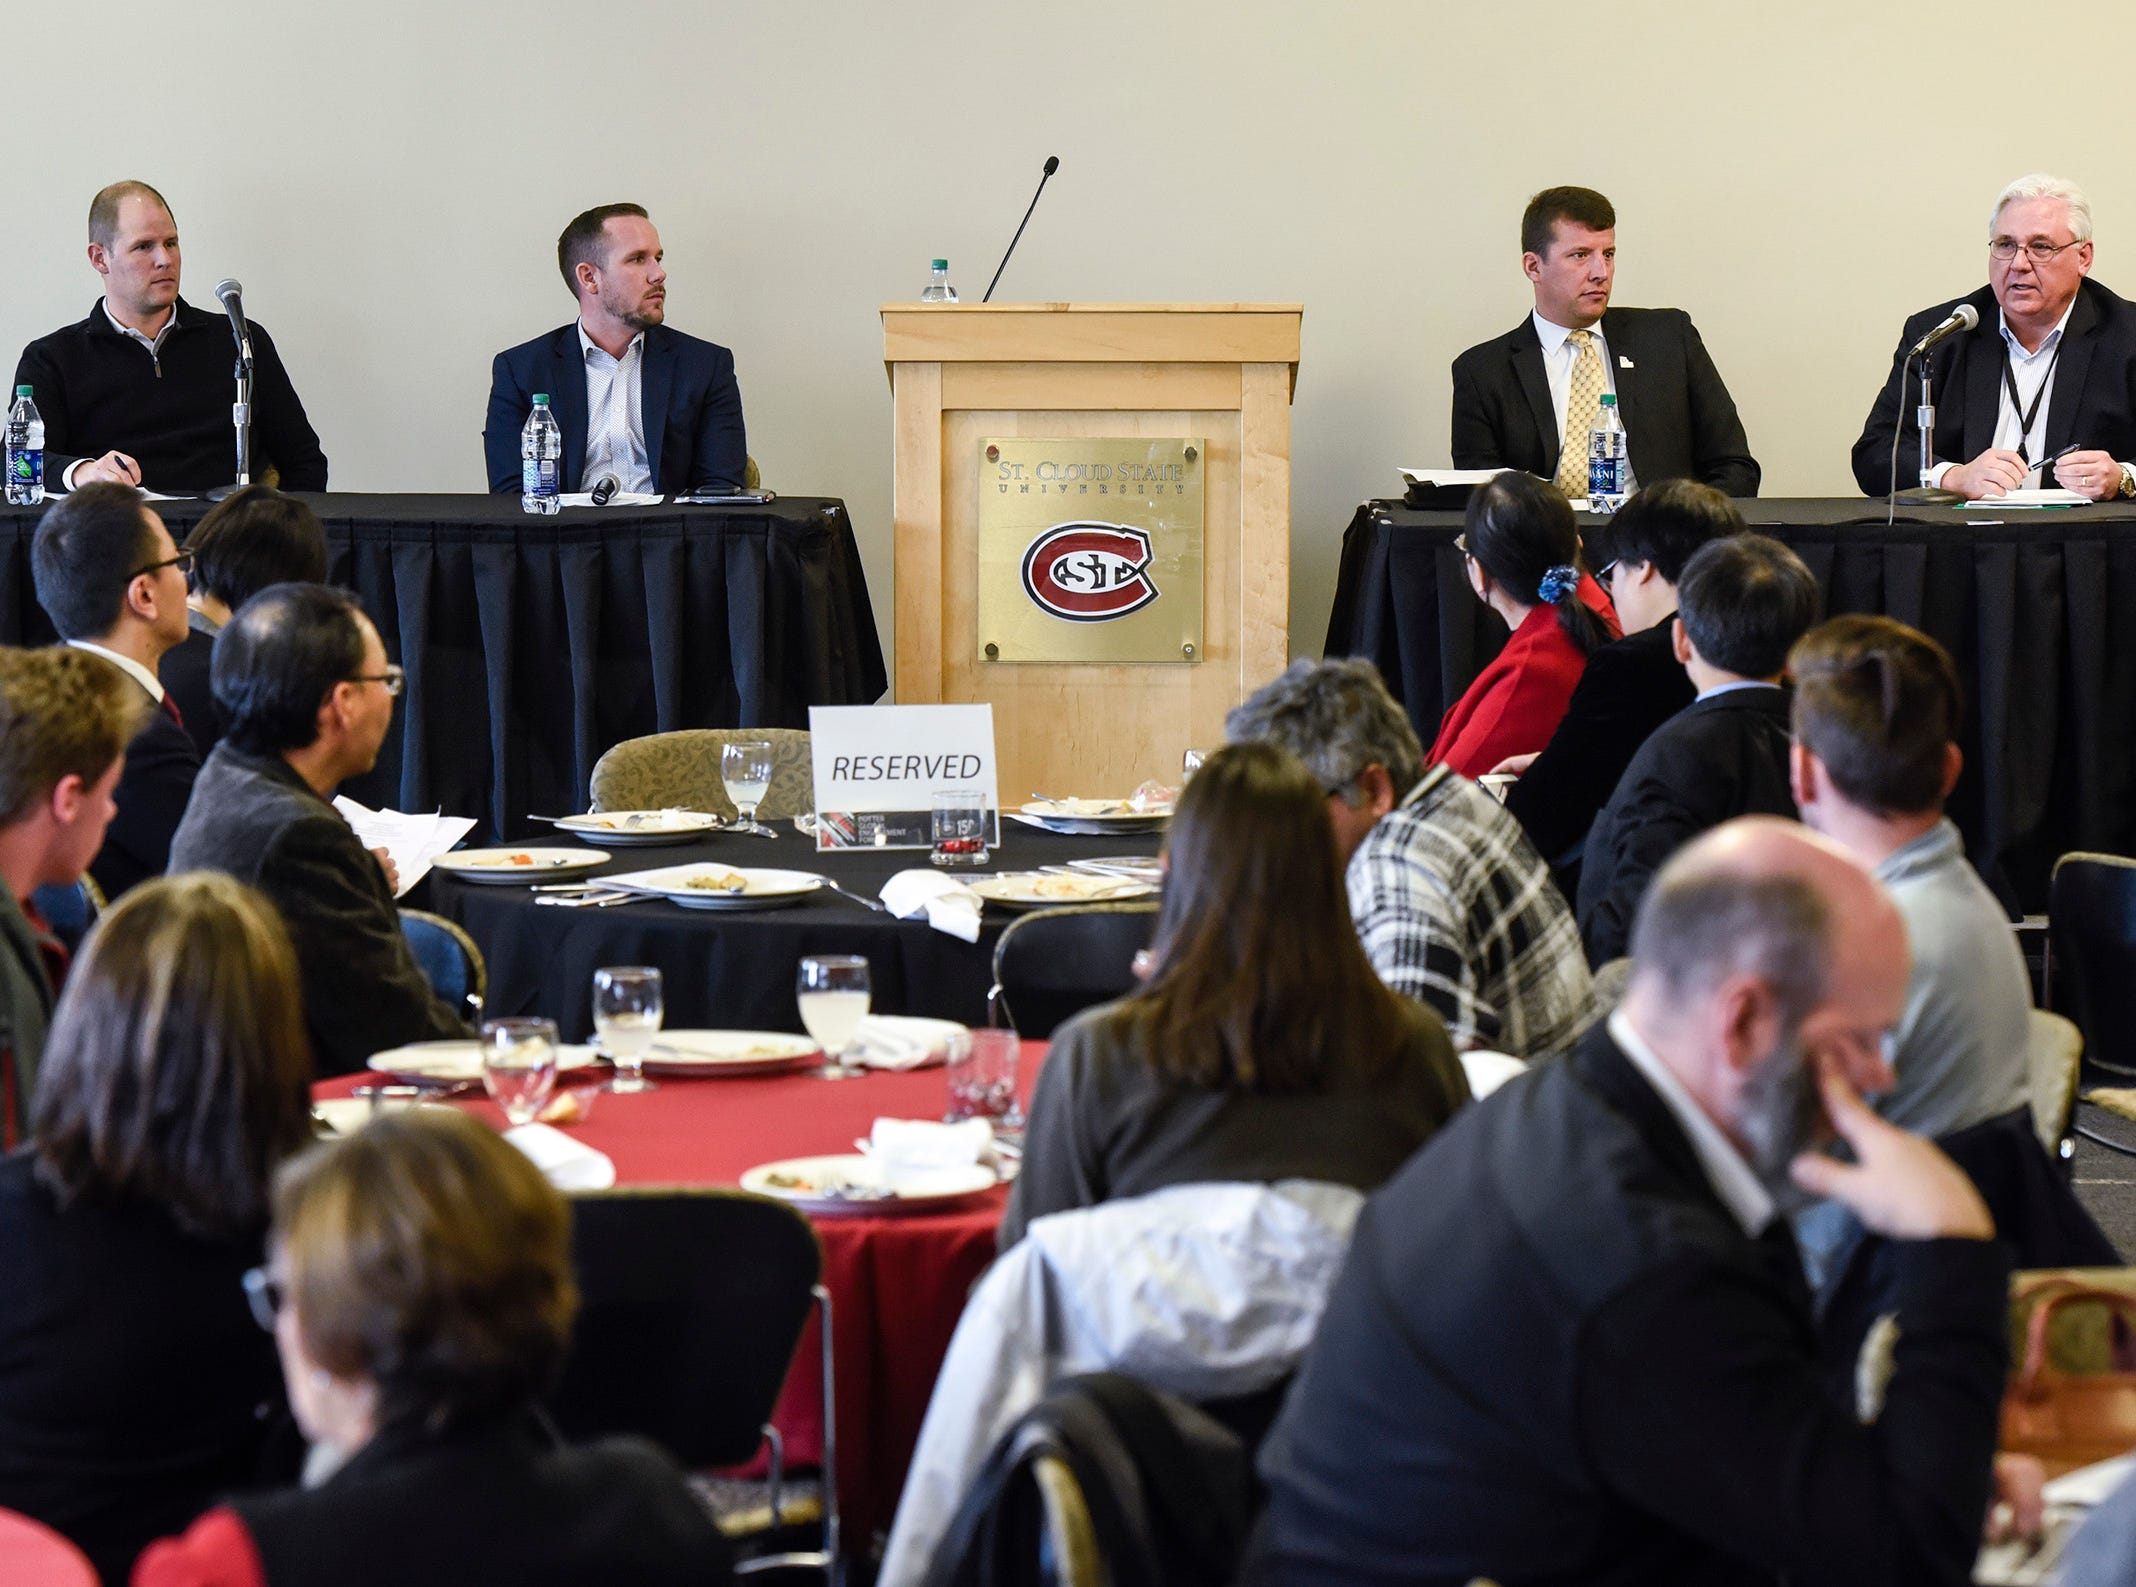 CEOs from DeZURIK, Microbiologics and Central McGowan talk tariff impacts at SCSU forum